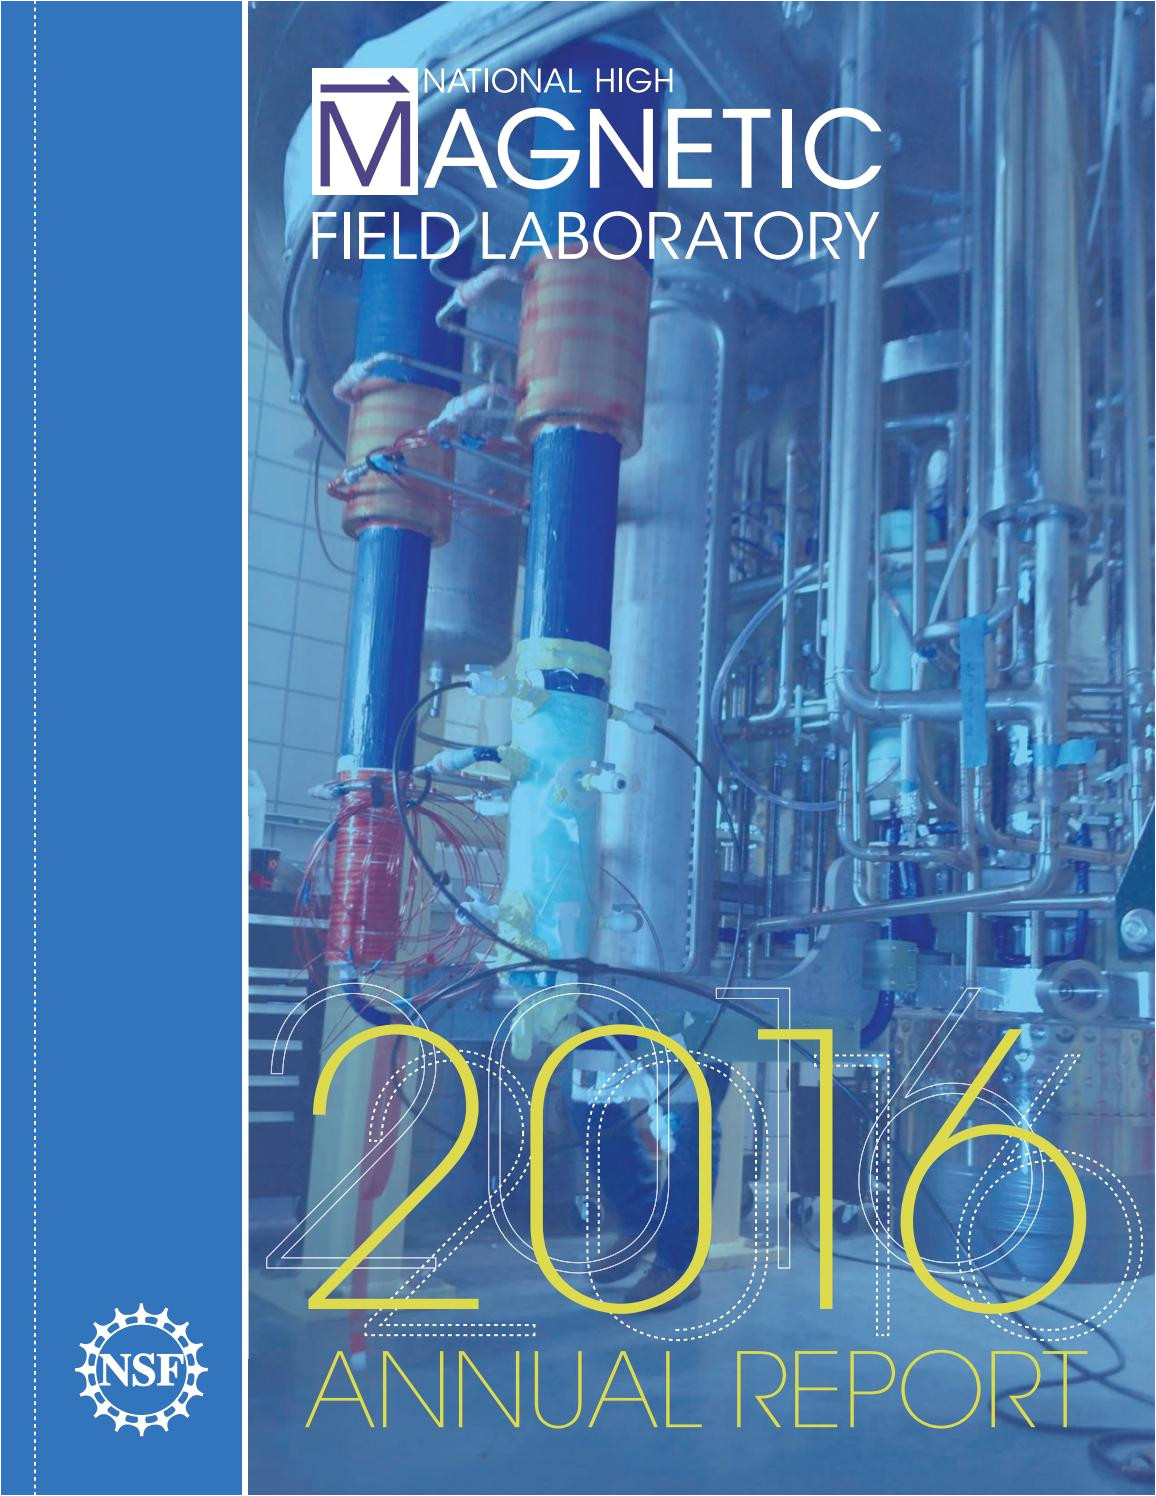 2016 annual report for the national high magnetic field laboratory by national maglab issuu